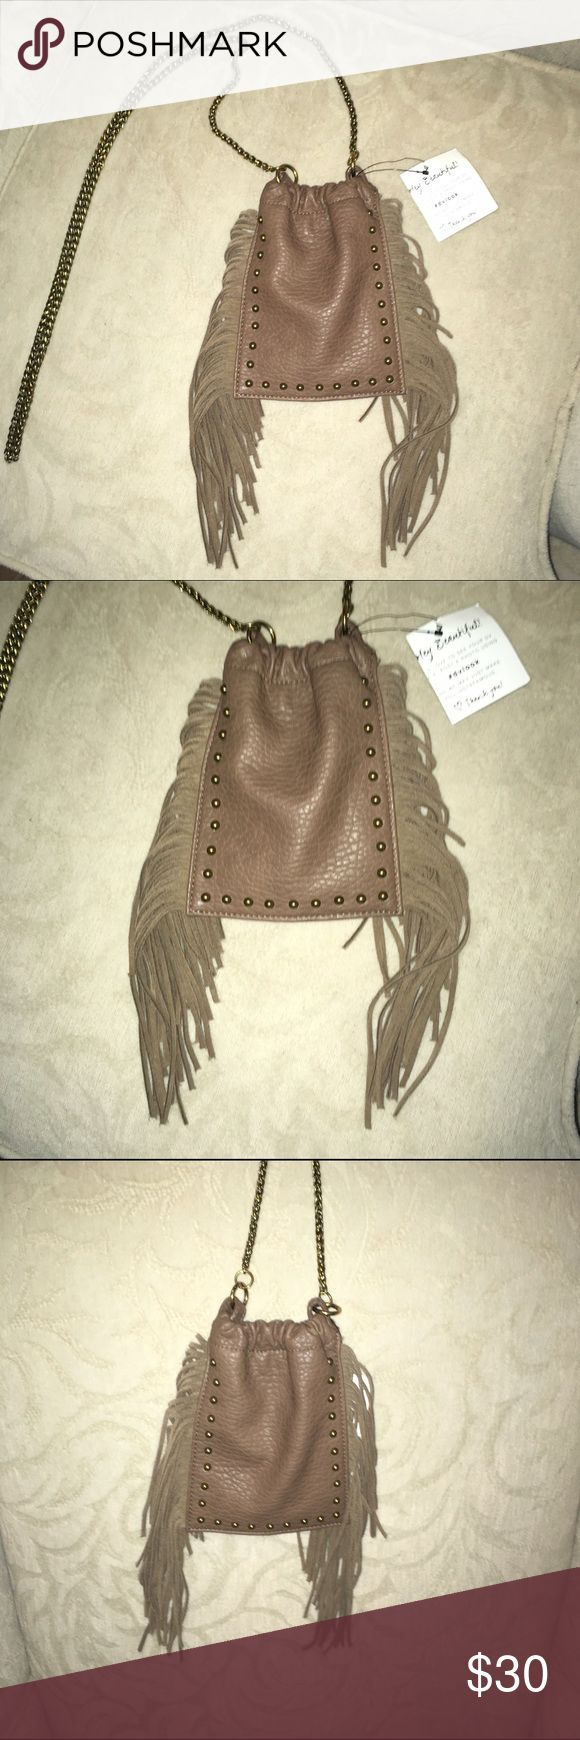 NWT! Dolce Vita cross body fringe bag in taupe This is such a great little bag for a shopping trip or a festival. Summer must have. Large enough to hold a phone (not iPhone plus) credit cards and a lip gloss DV by Dolce Vita Bags Crossbody Bags